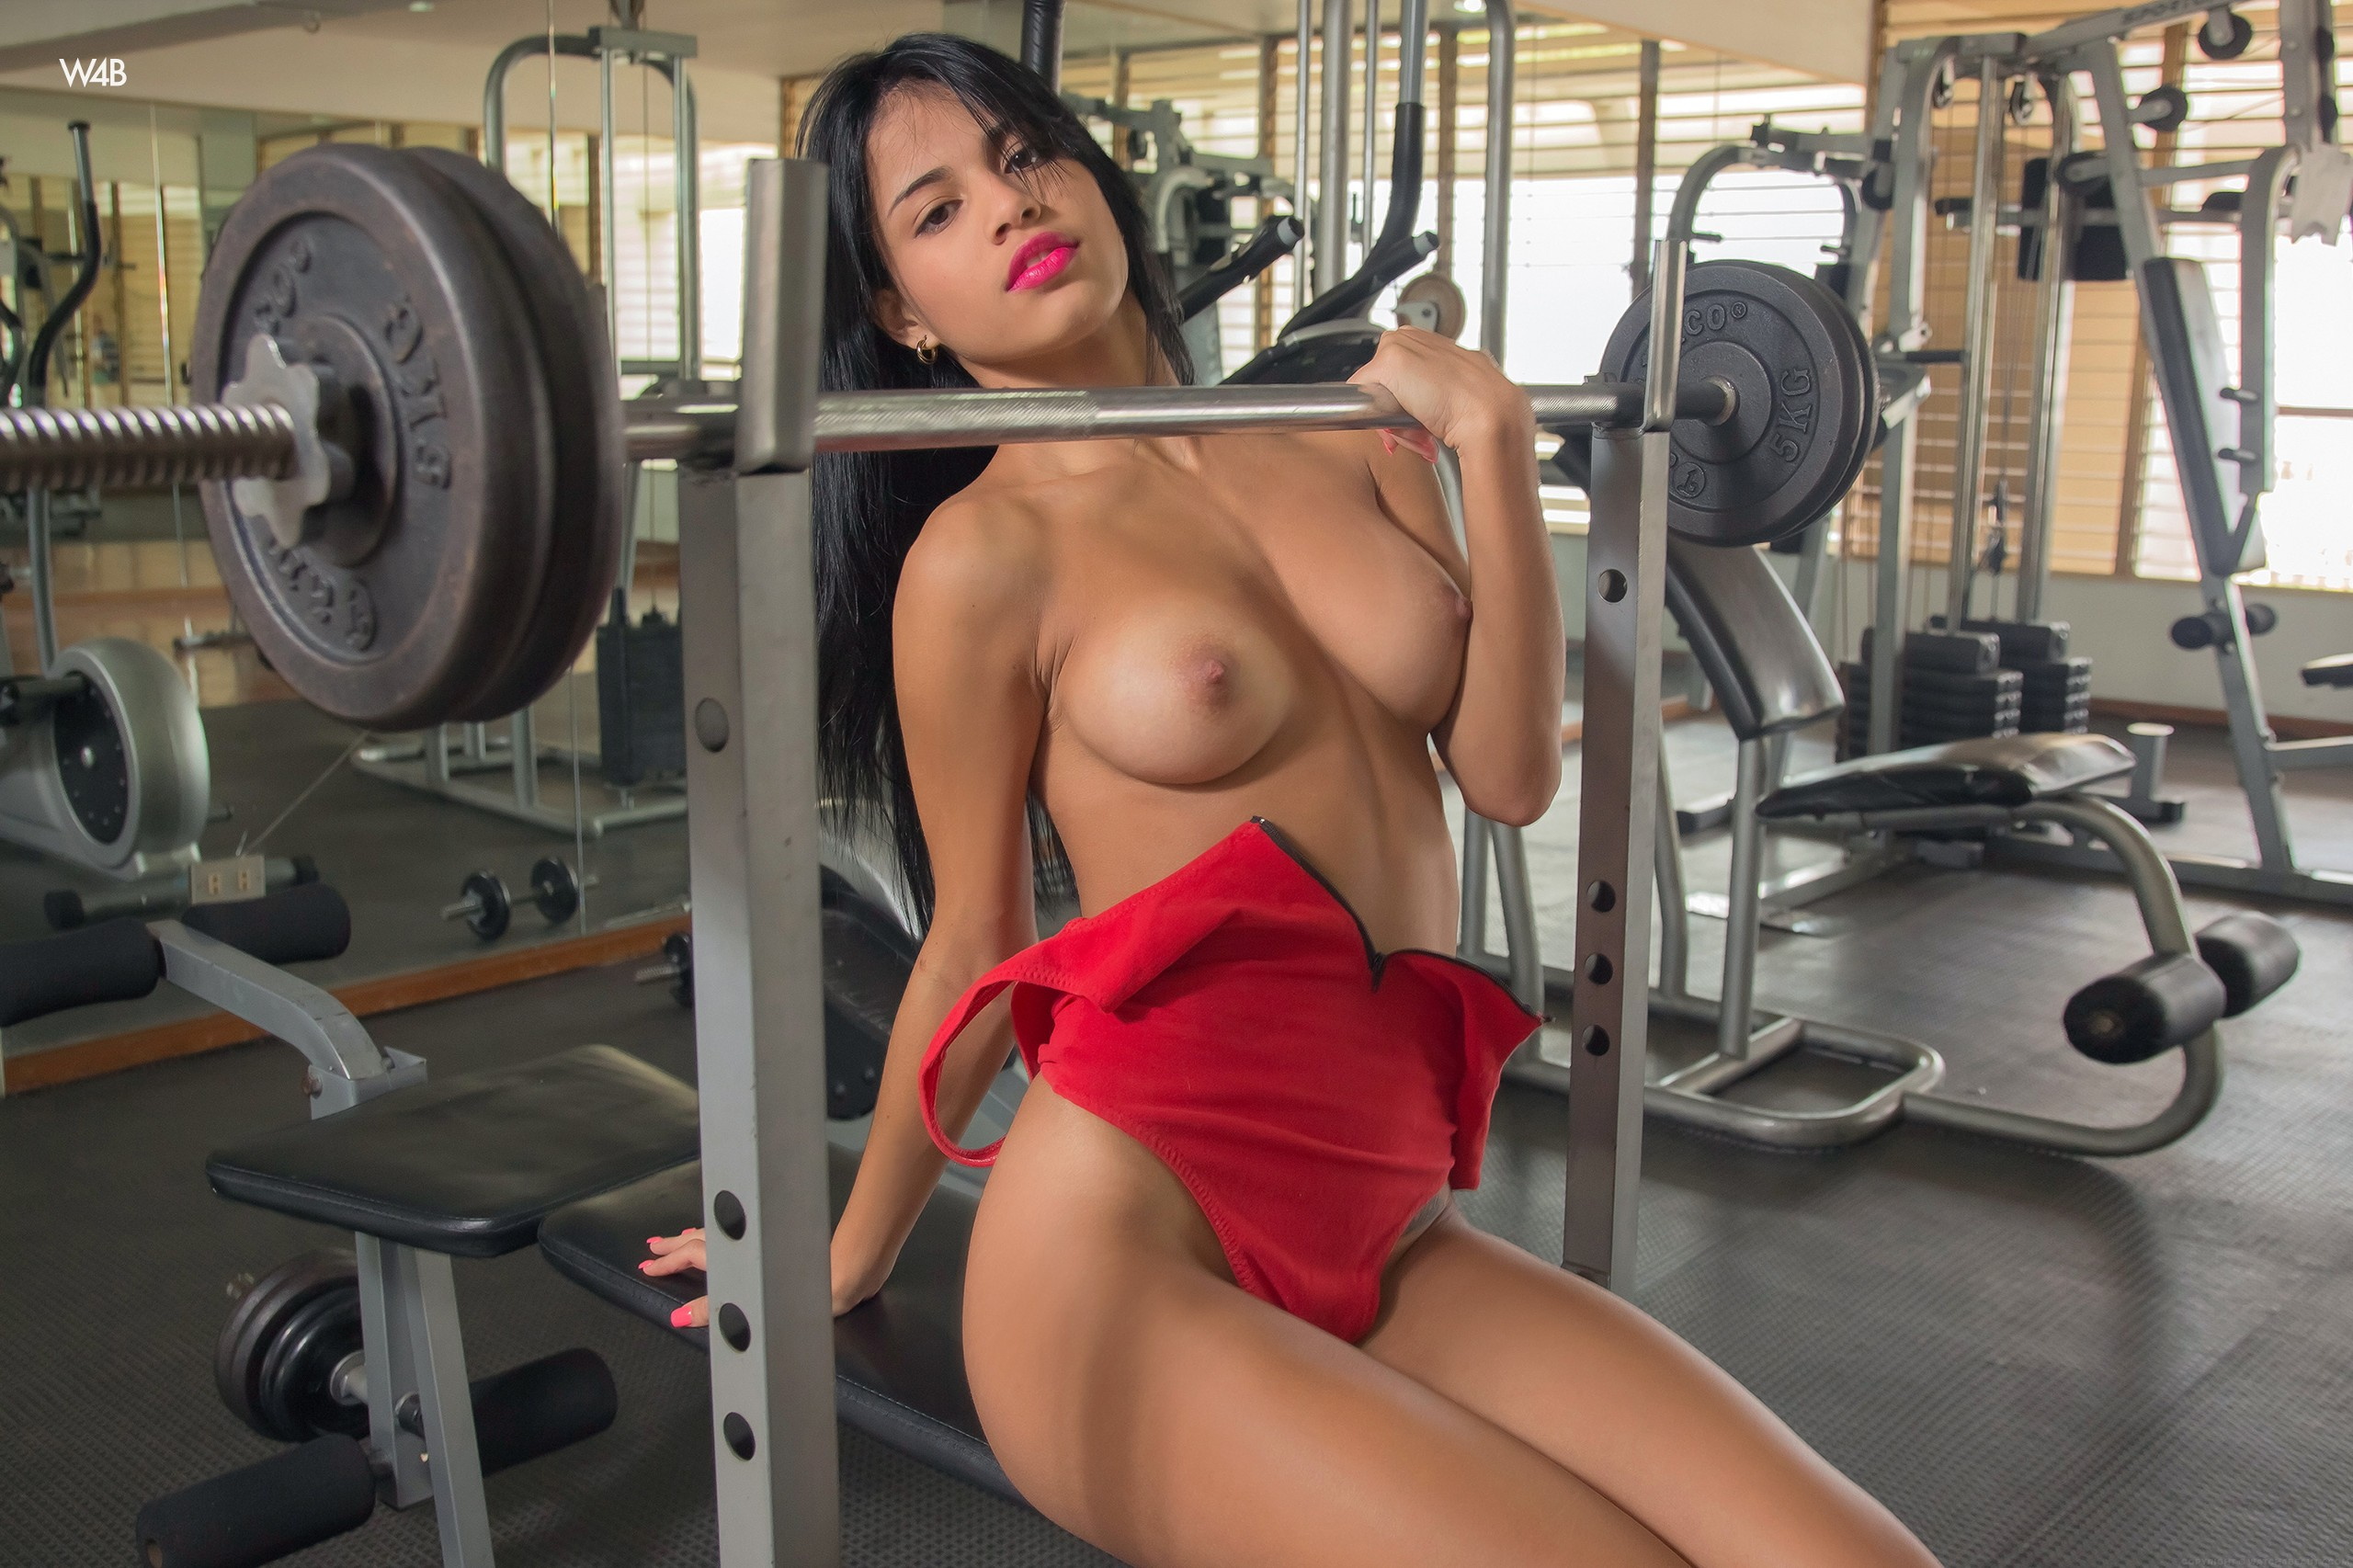 sexy-girl-thats-gyms-naked